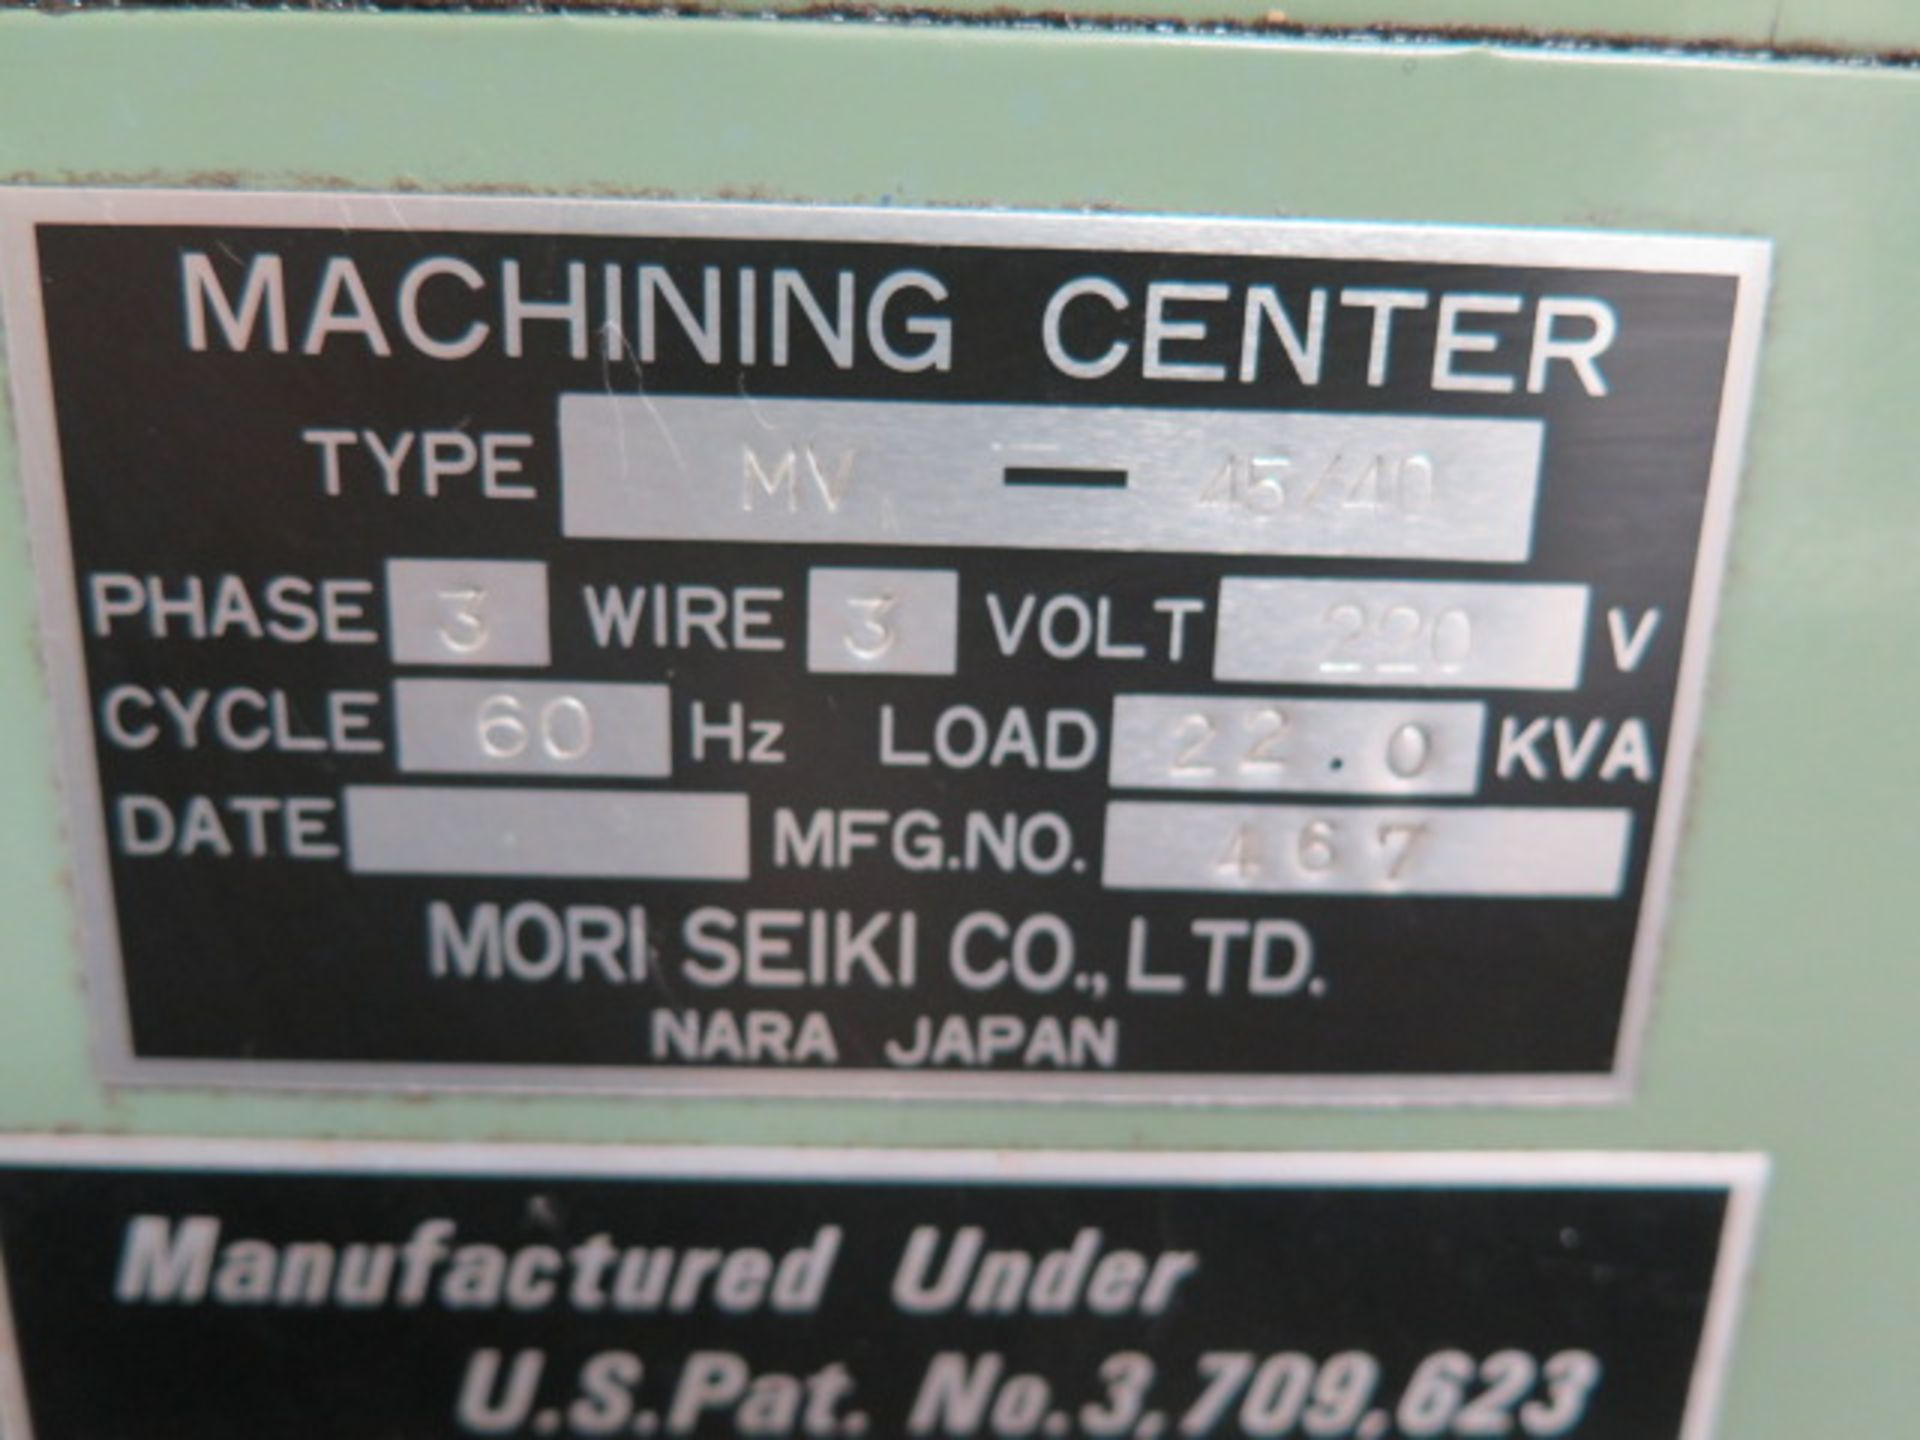 Mori Seiki MV-45/40 CNC VMC s/n 467 w/ Fanuc System 6M Controls, 20 ATC, SOLD AS IS - Image 14 of 14